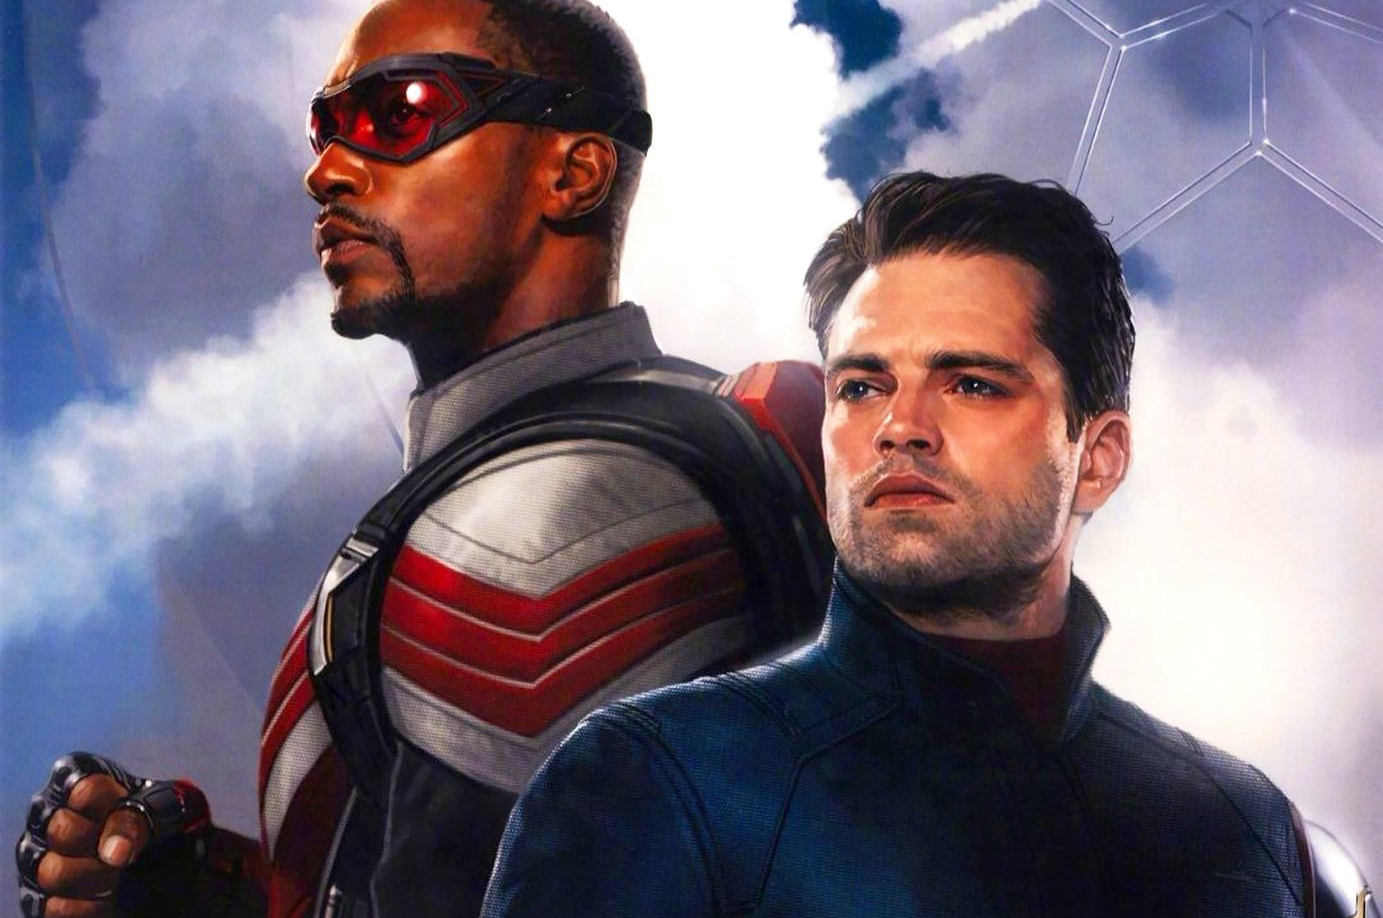 The Falcon and the Winter Soldier: All We Know About the Disney+ Series